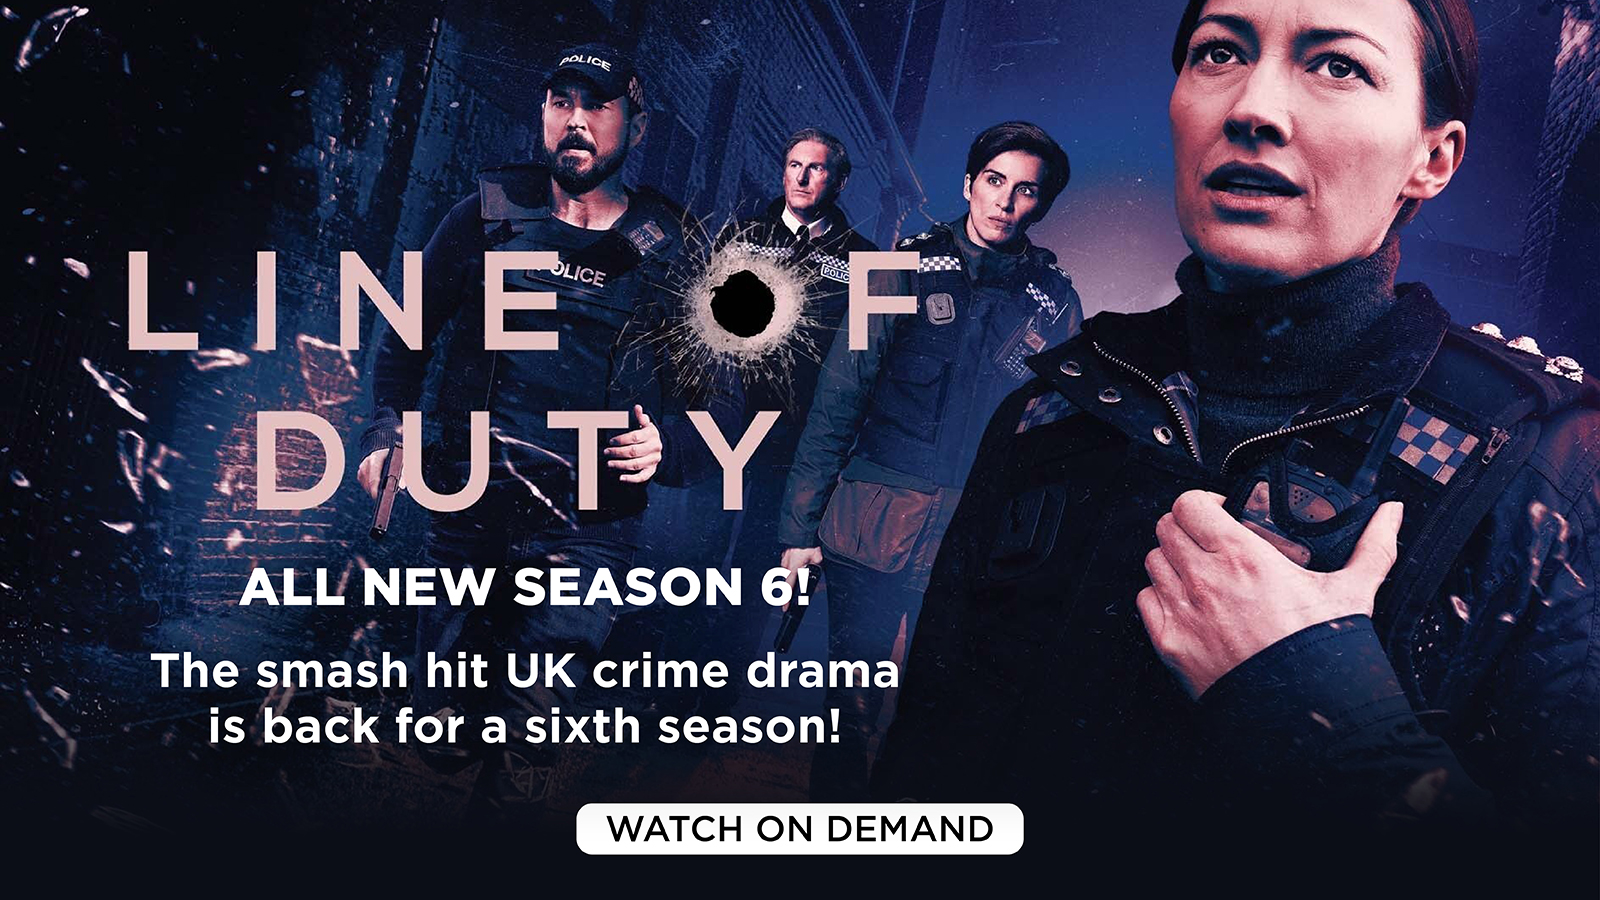 Line of Duty All new season 6! The smash hit UK crime drama is back for a sixth season [Watch On Demand]